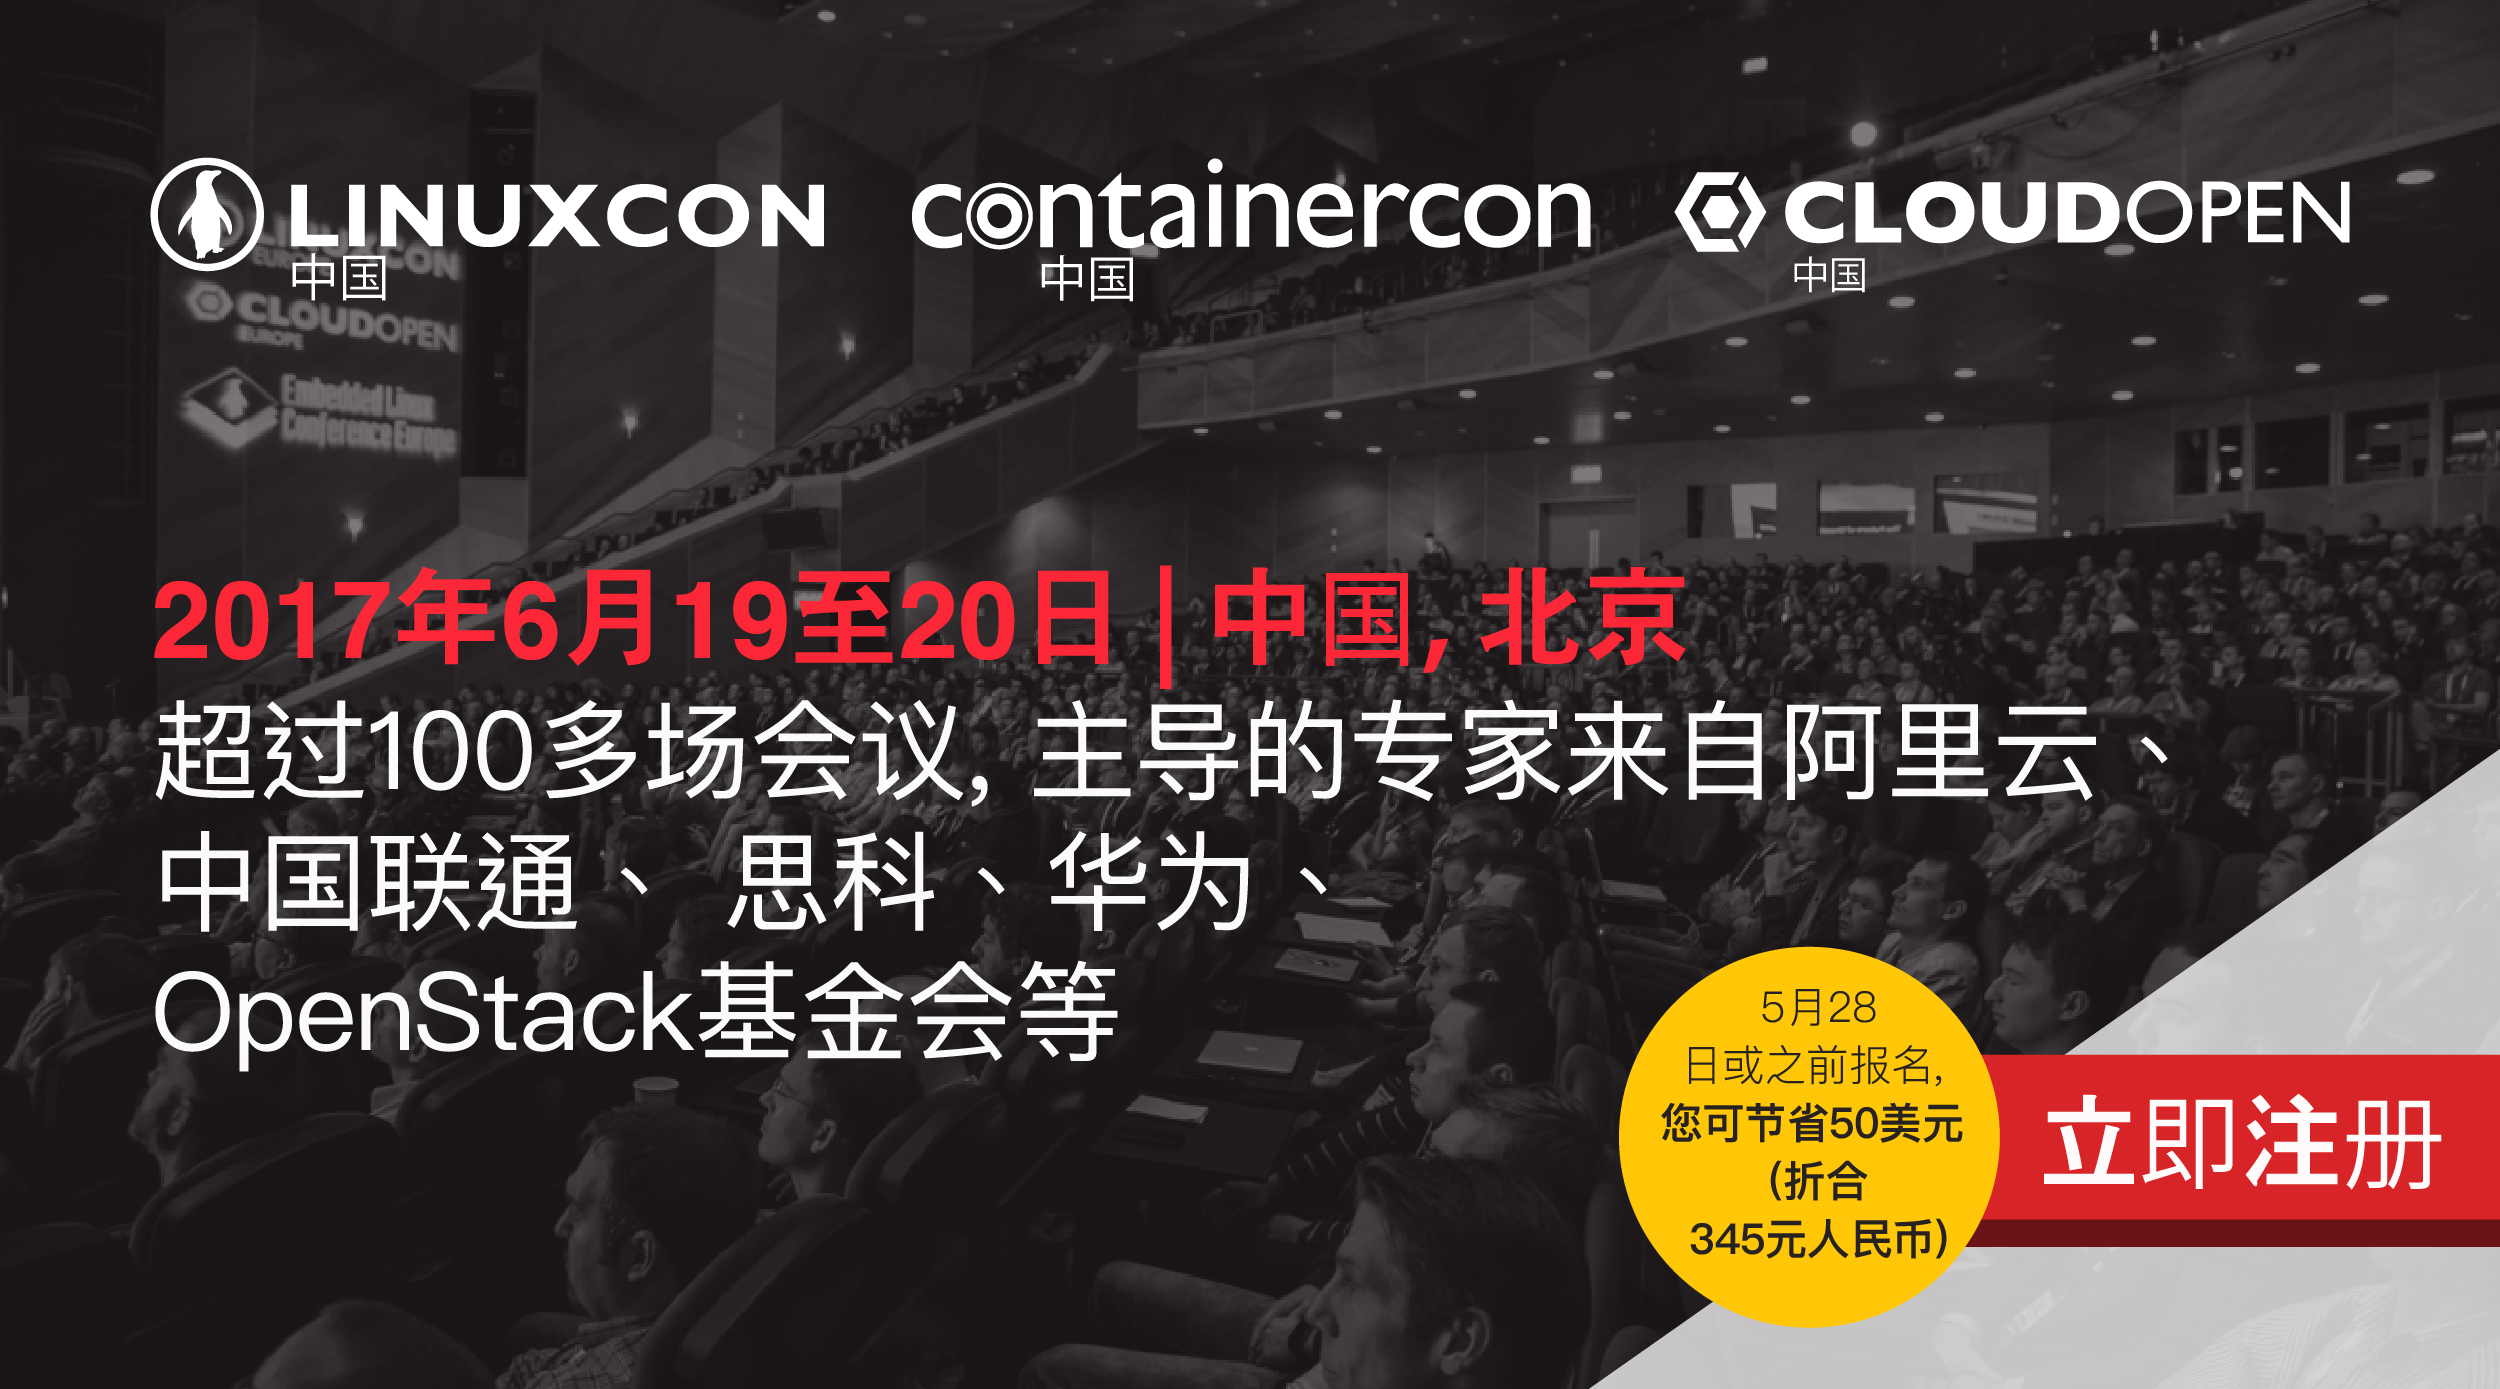 LinuxCon_CloudOpen_ContainerCon_China_BannerAds_900x500(1).jpg-1276.6kB